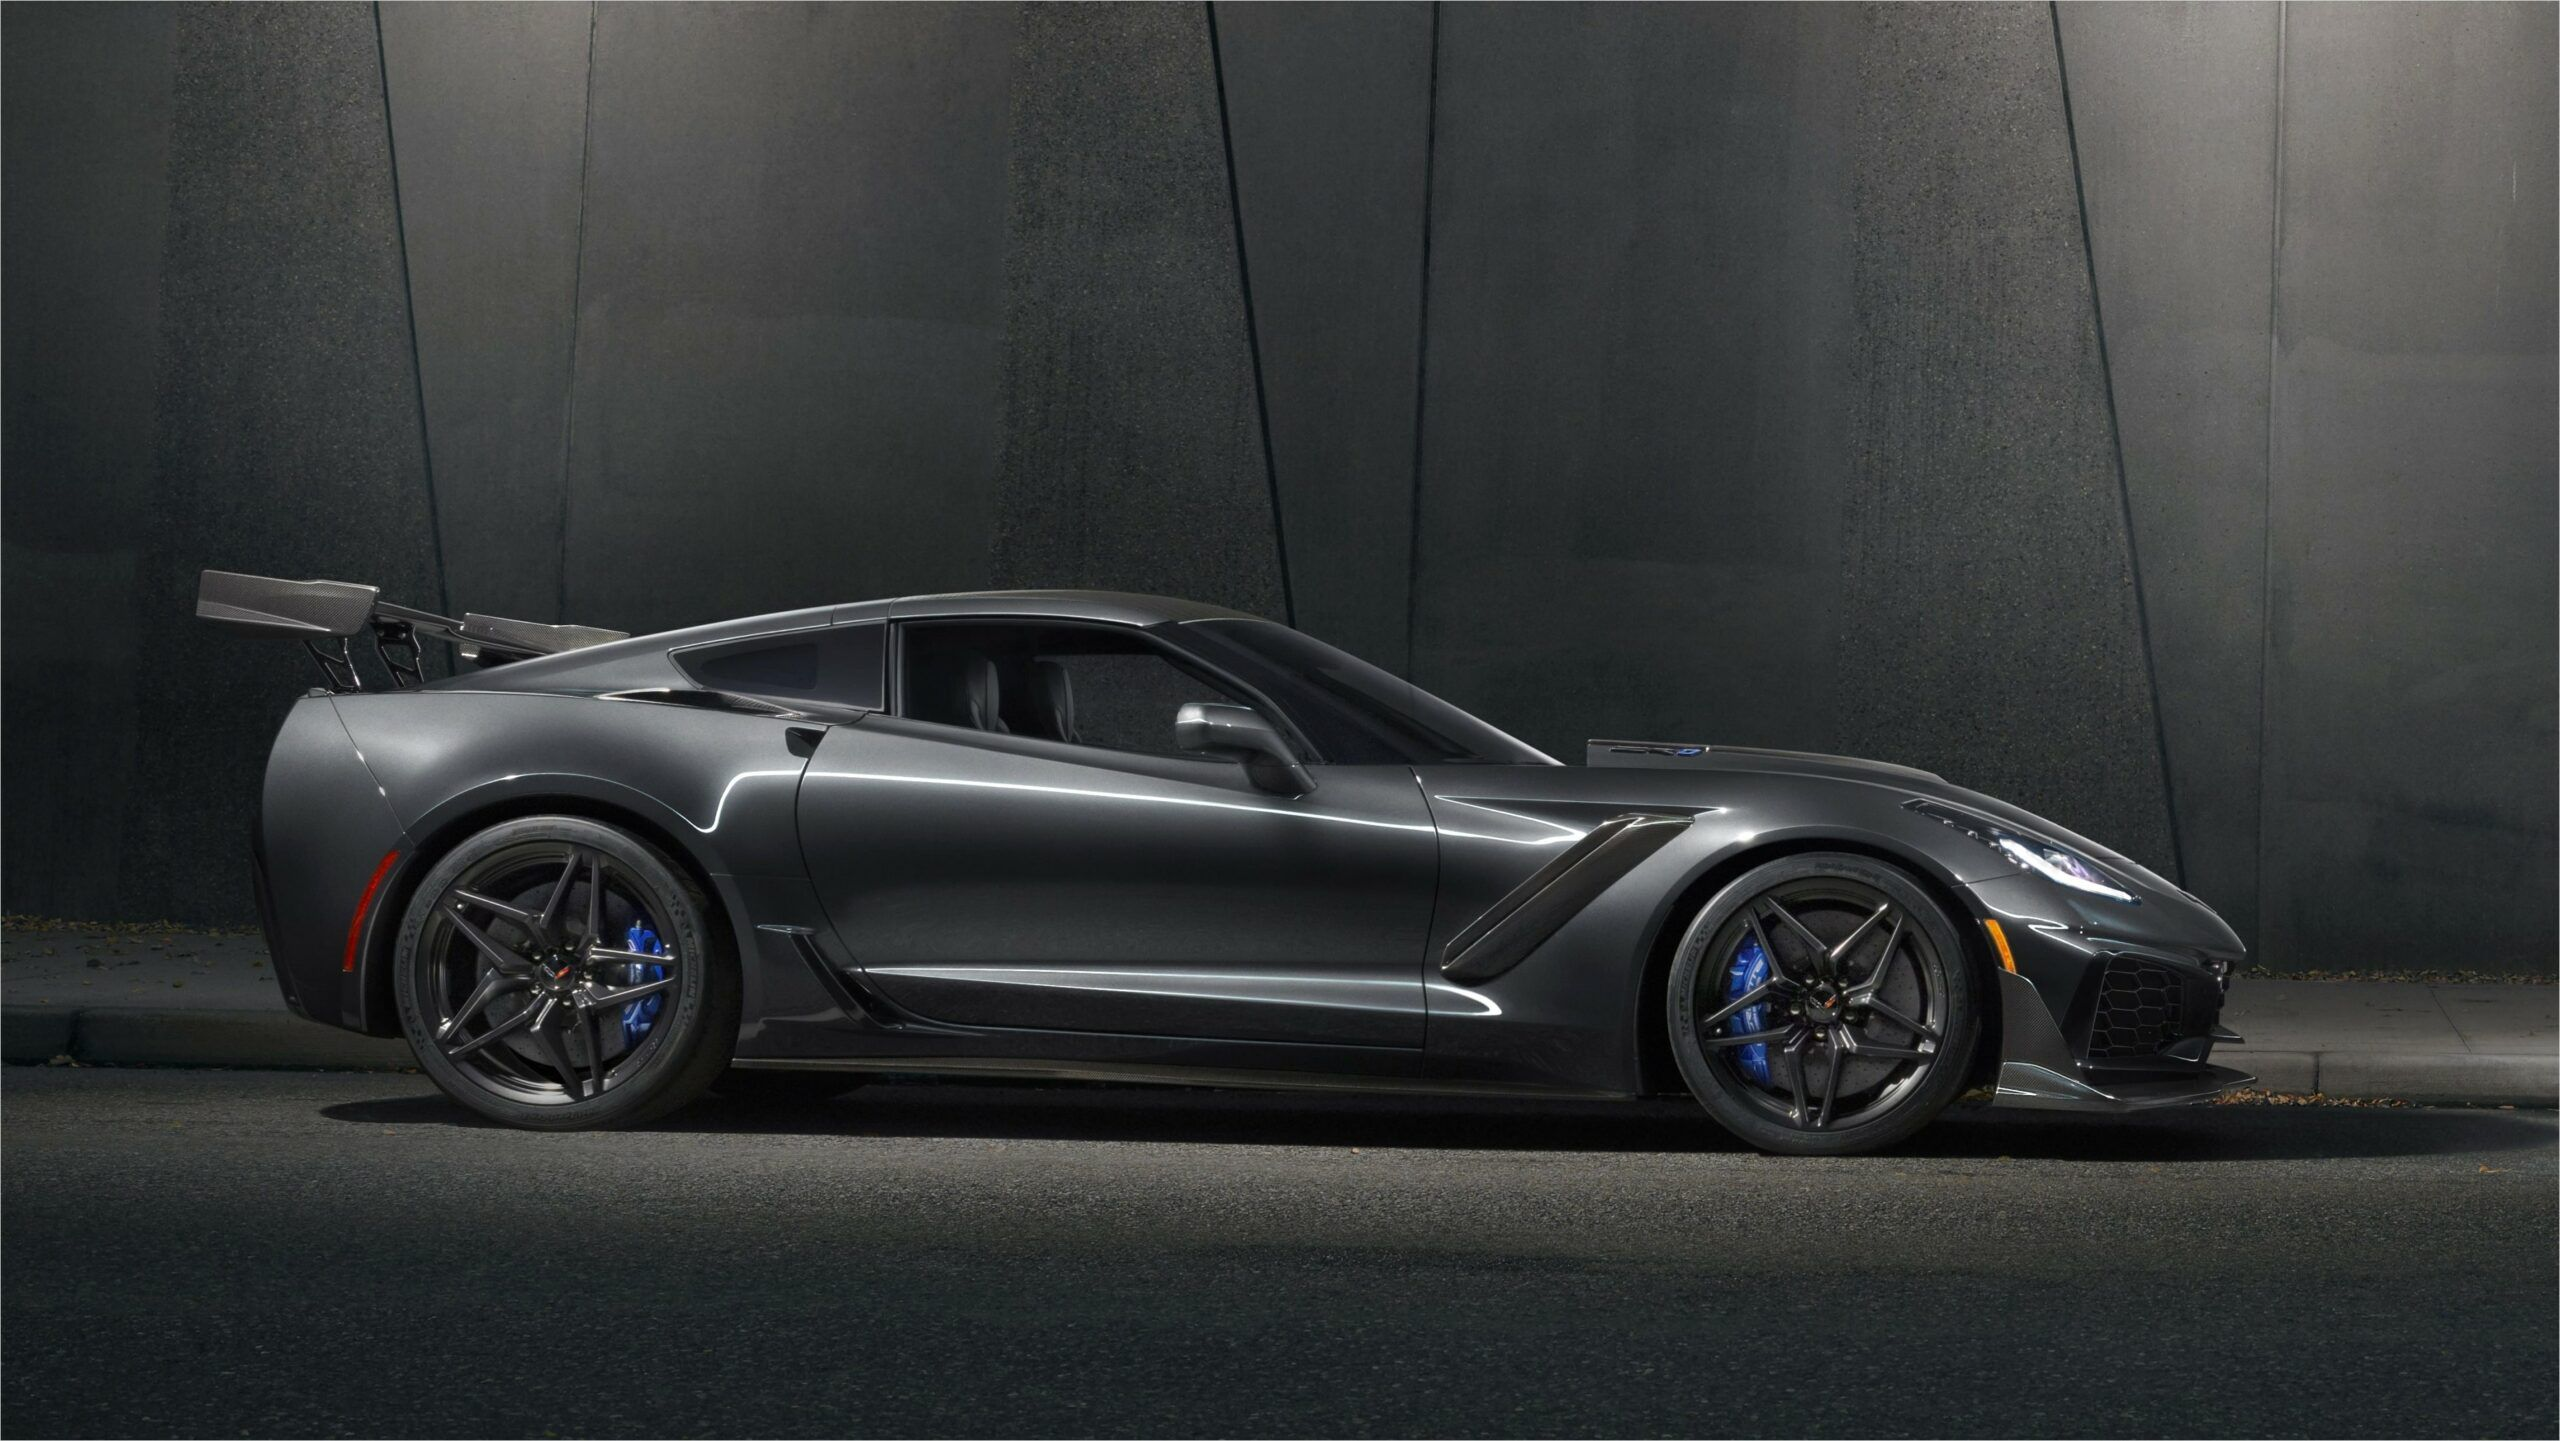 2018 Corvette Zr1 4k Wallpaper In 2020 Corvette Zr1 Chevrolet Corvette Corvette